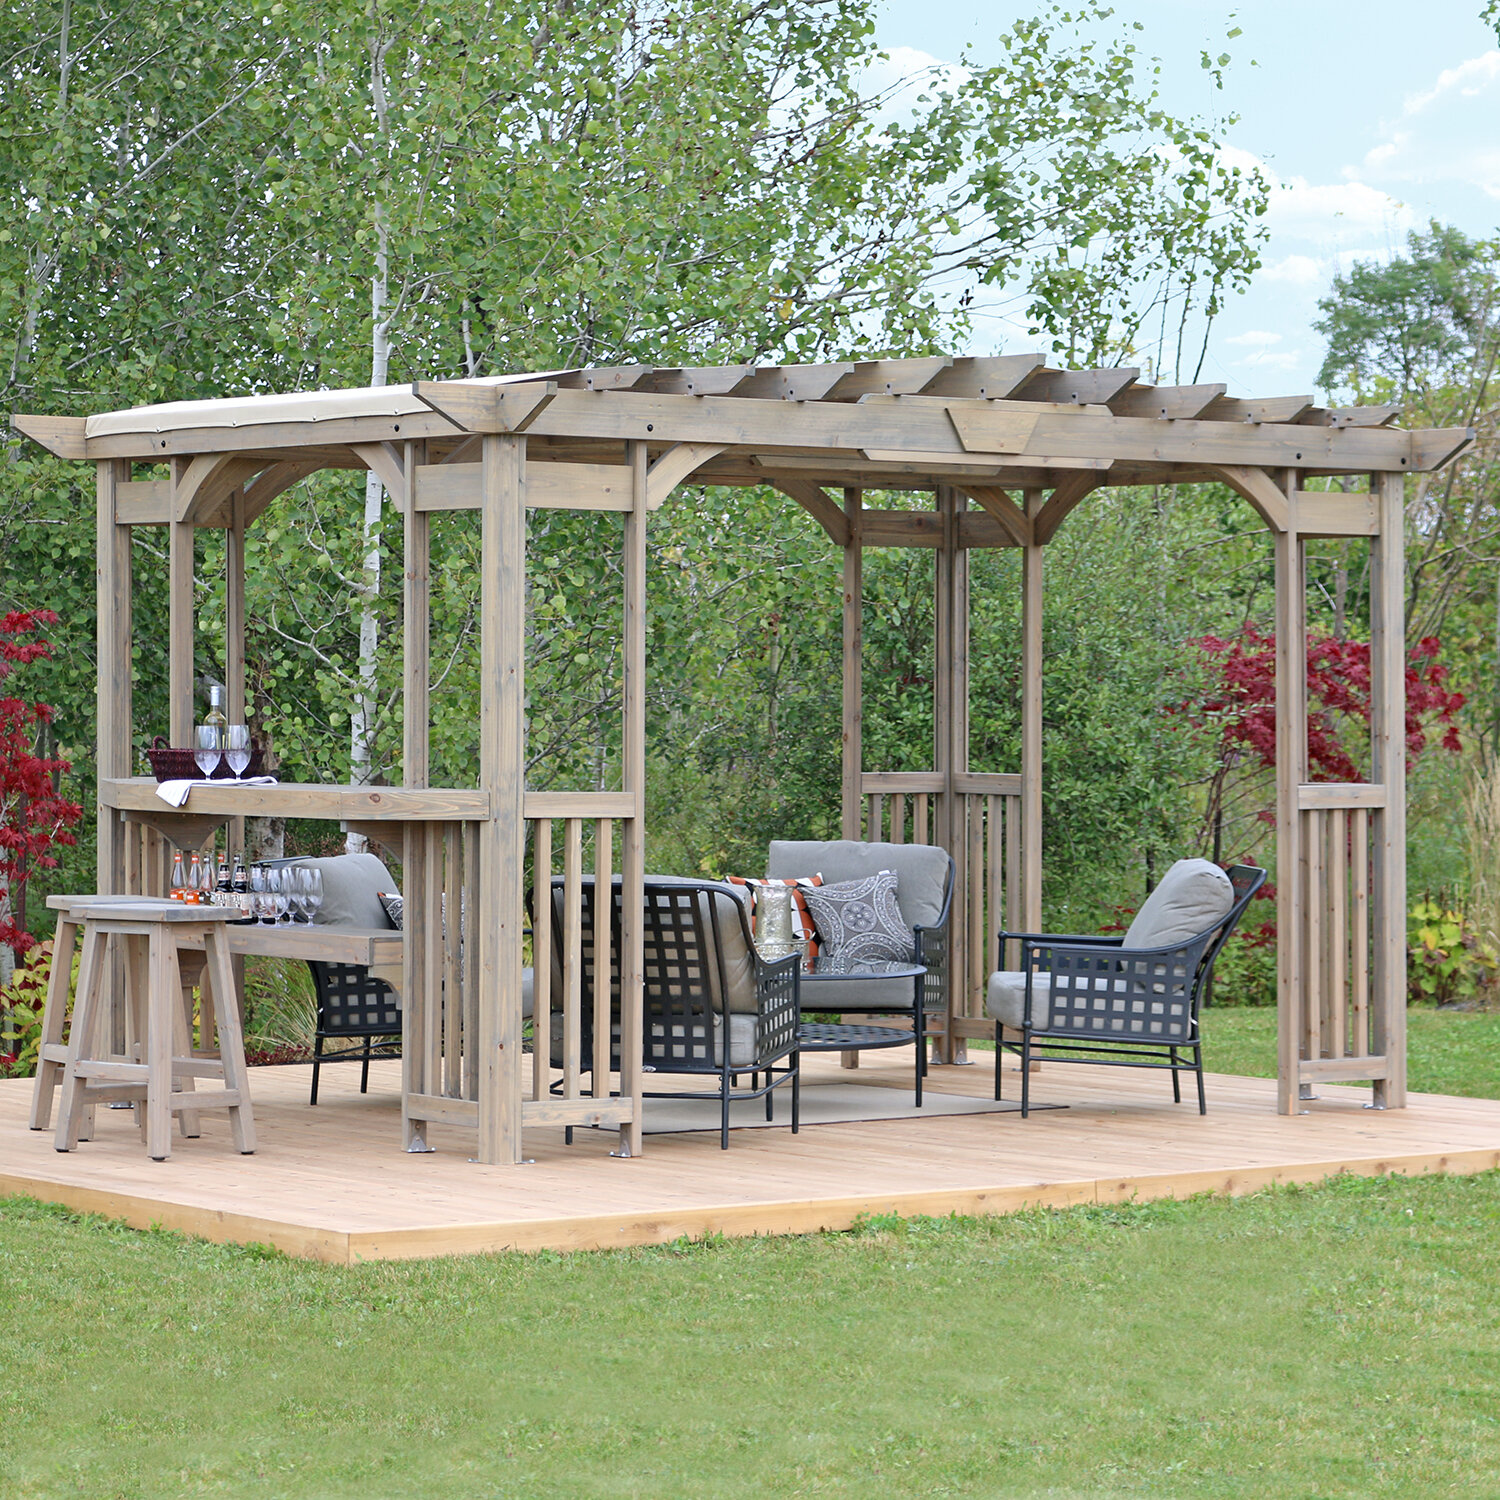 Yardistry Madison 4 Ft. W x 4 Ft. D Solid Wood Pergola & Reviews